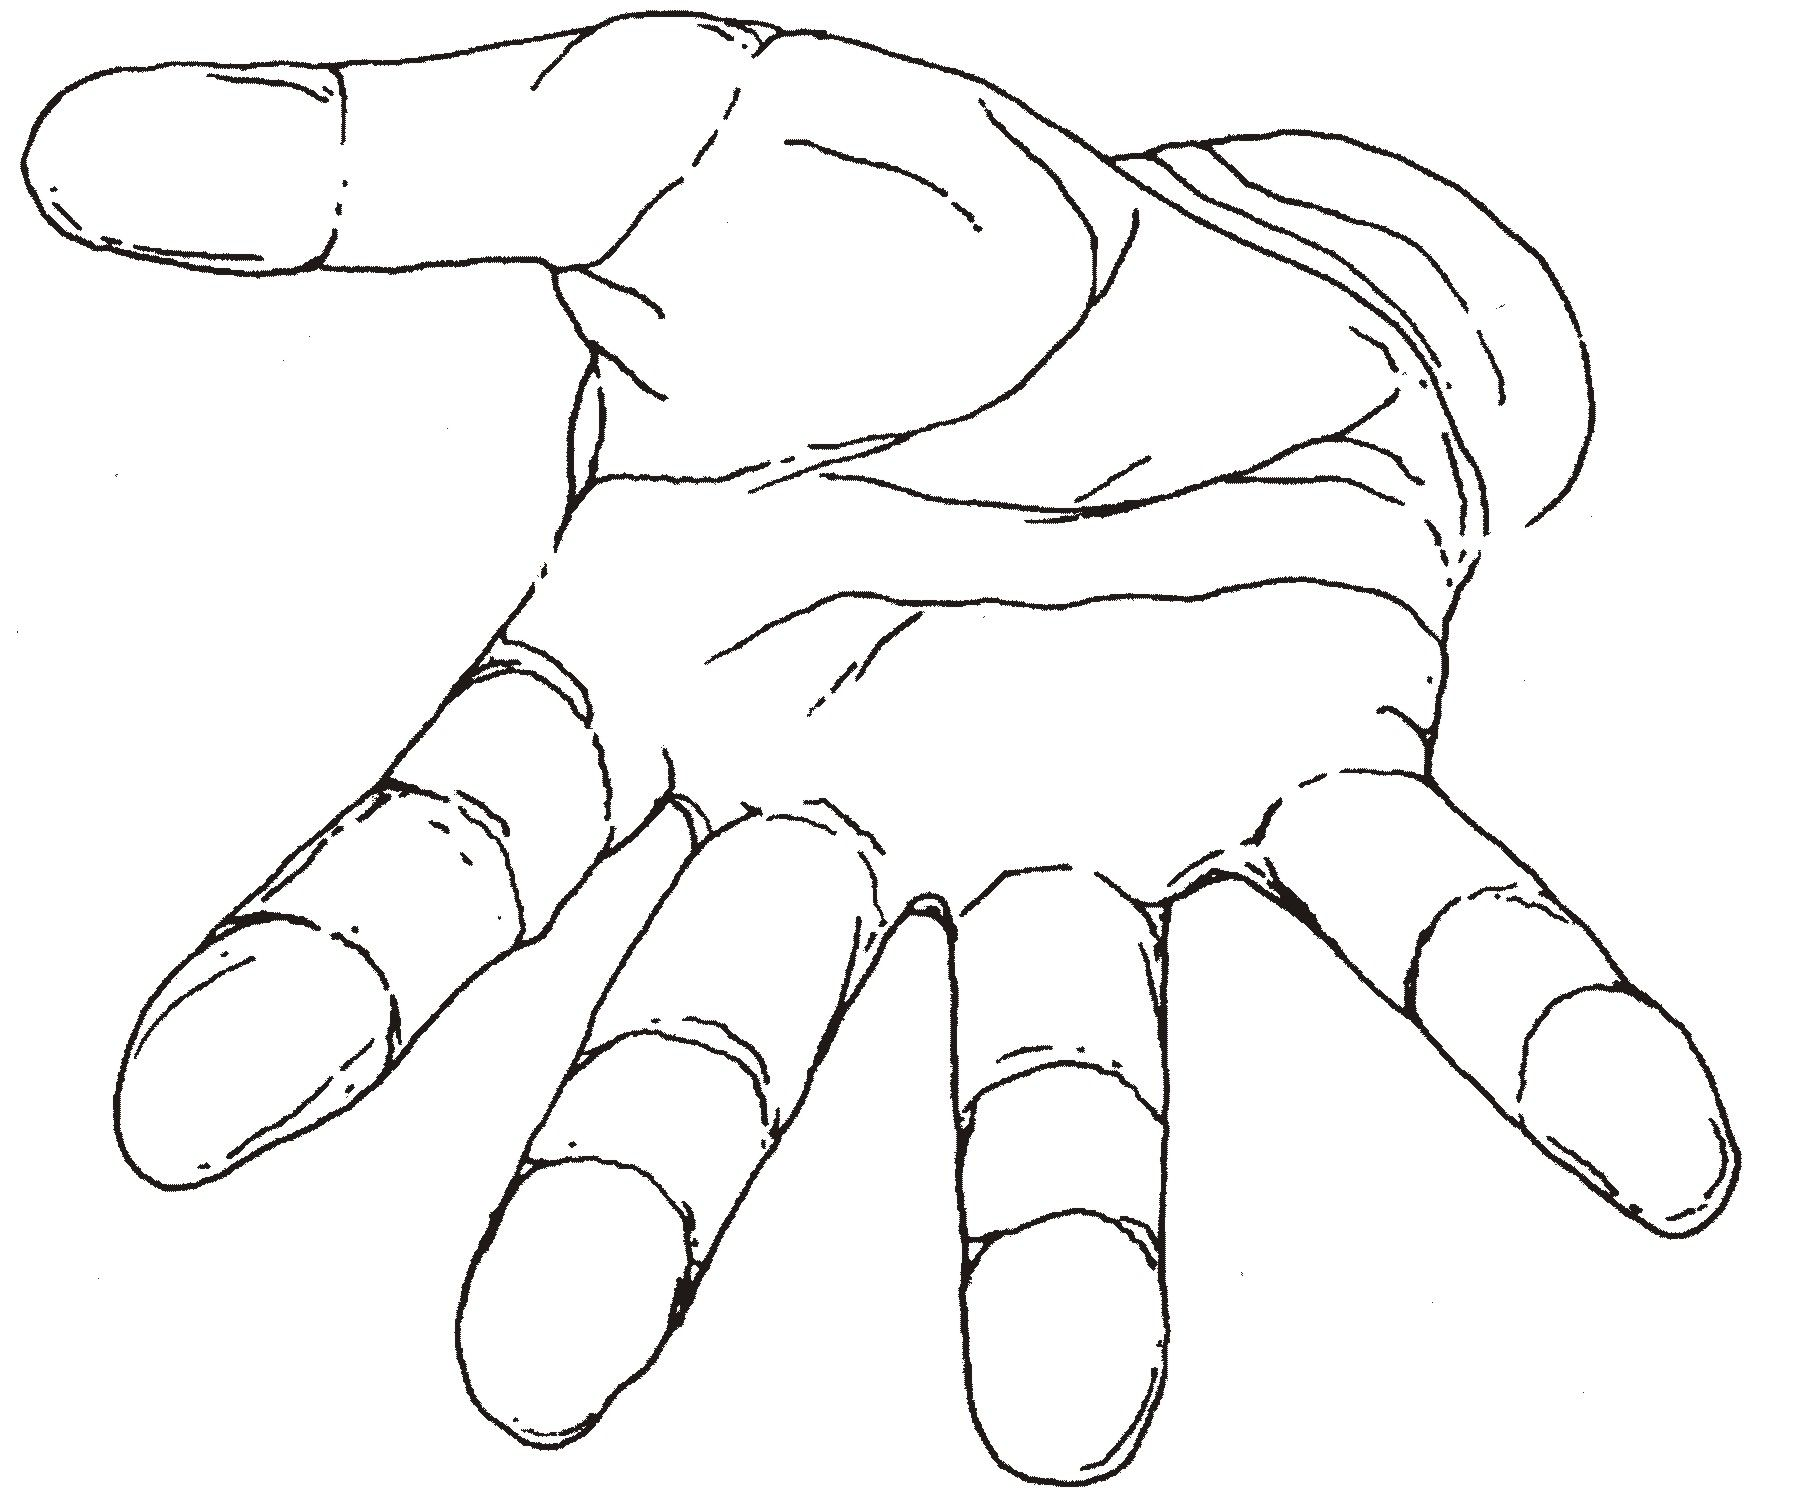 Hand Outline Template Printable Hand Outline Hand Drawing Reference Hand Reaching Out Drawing